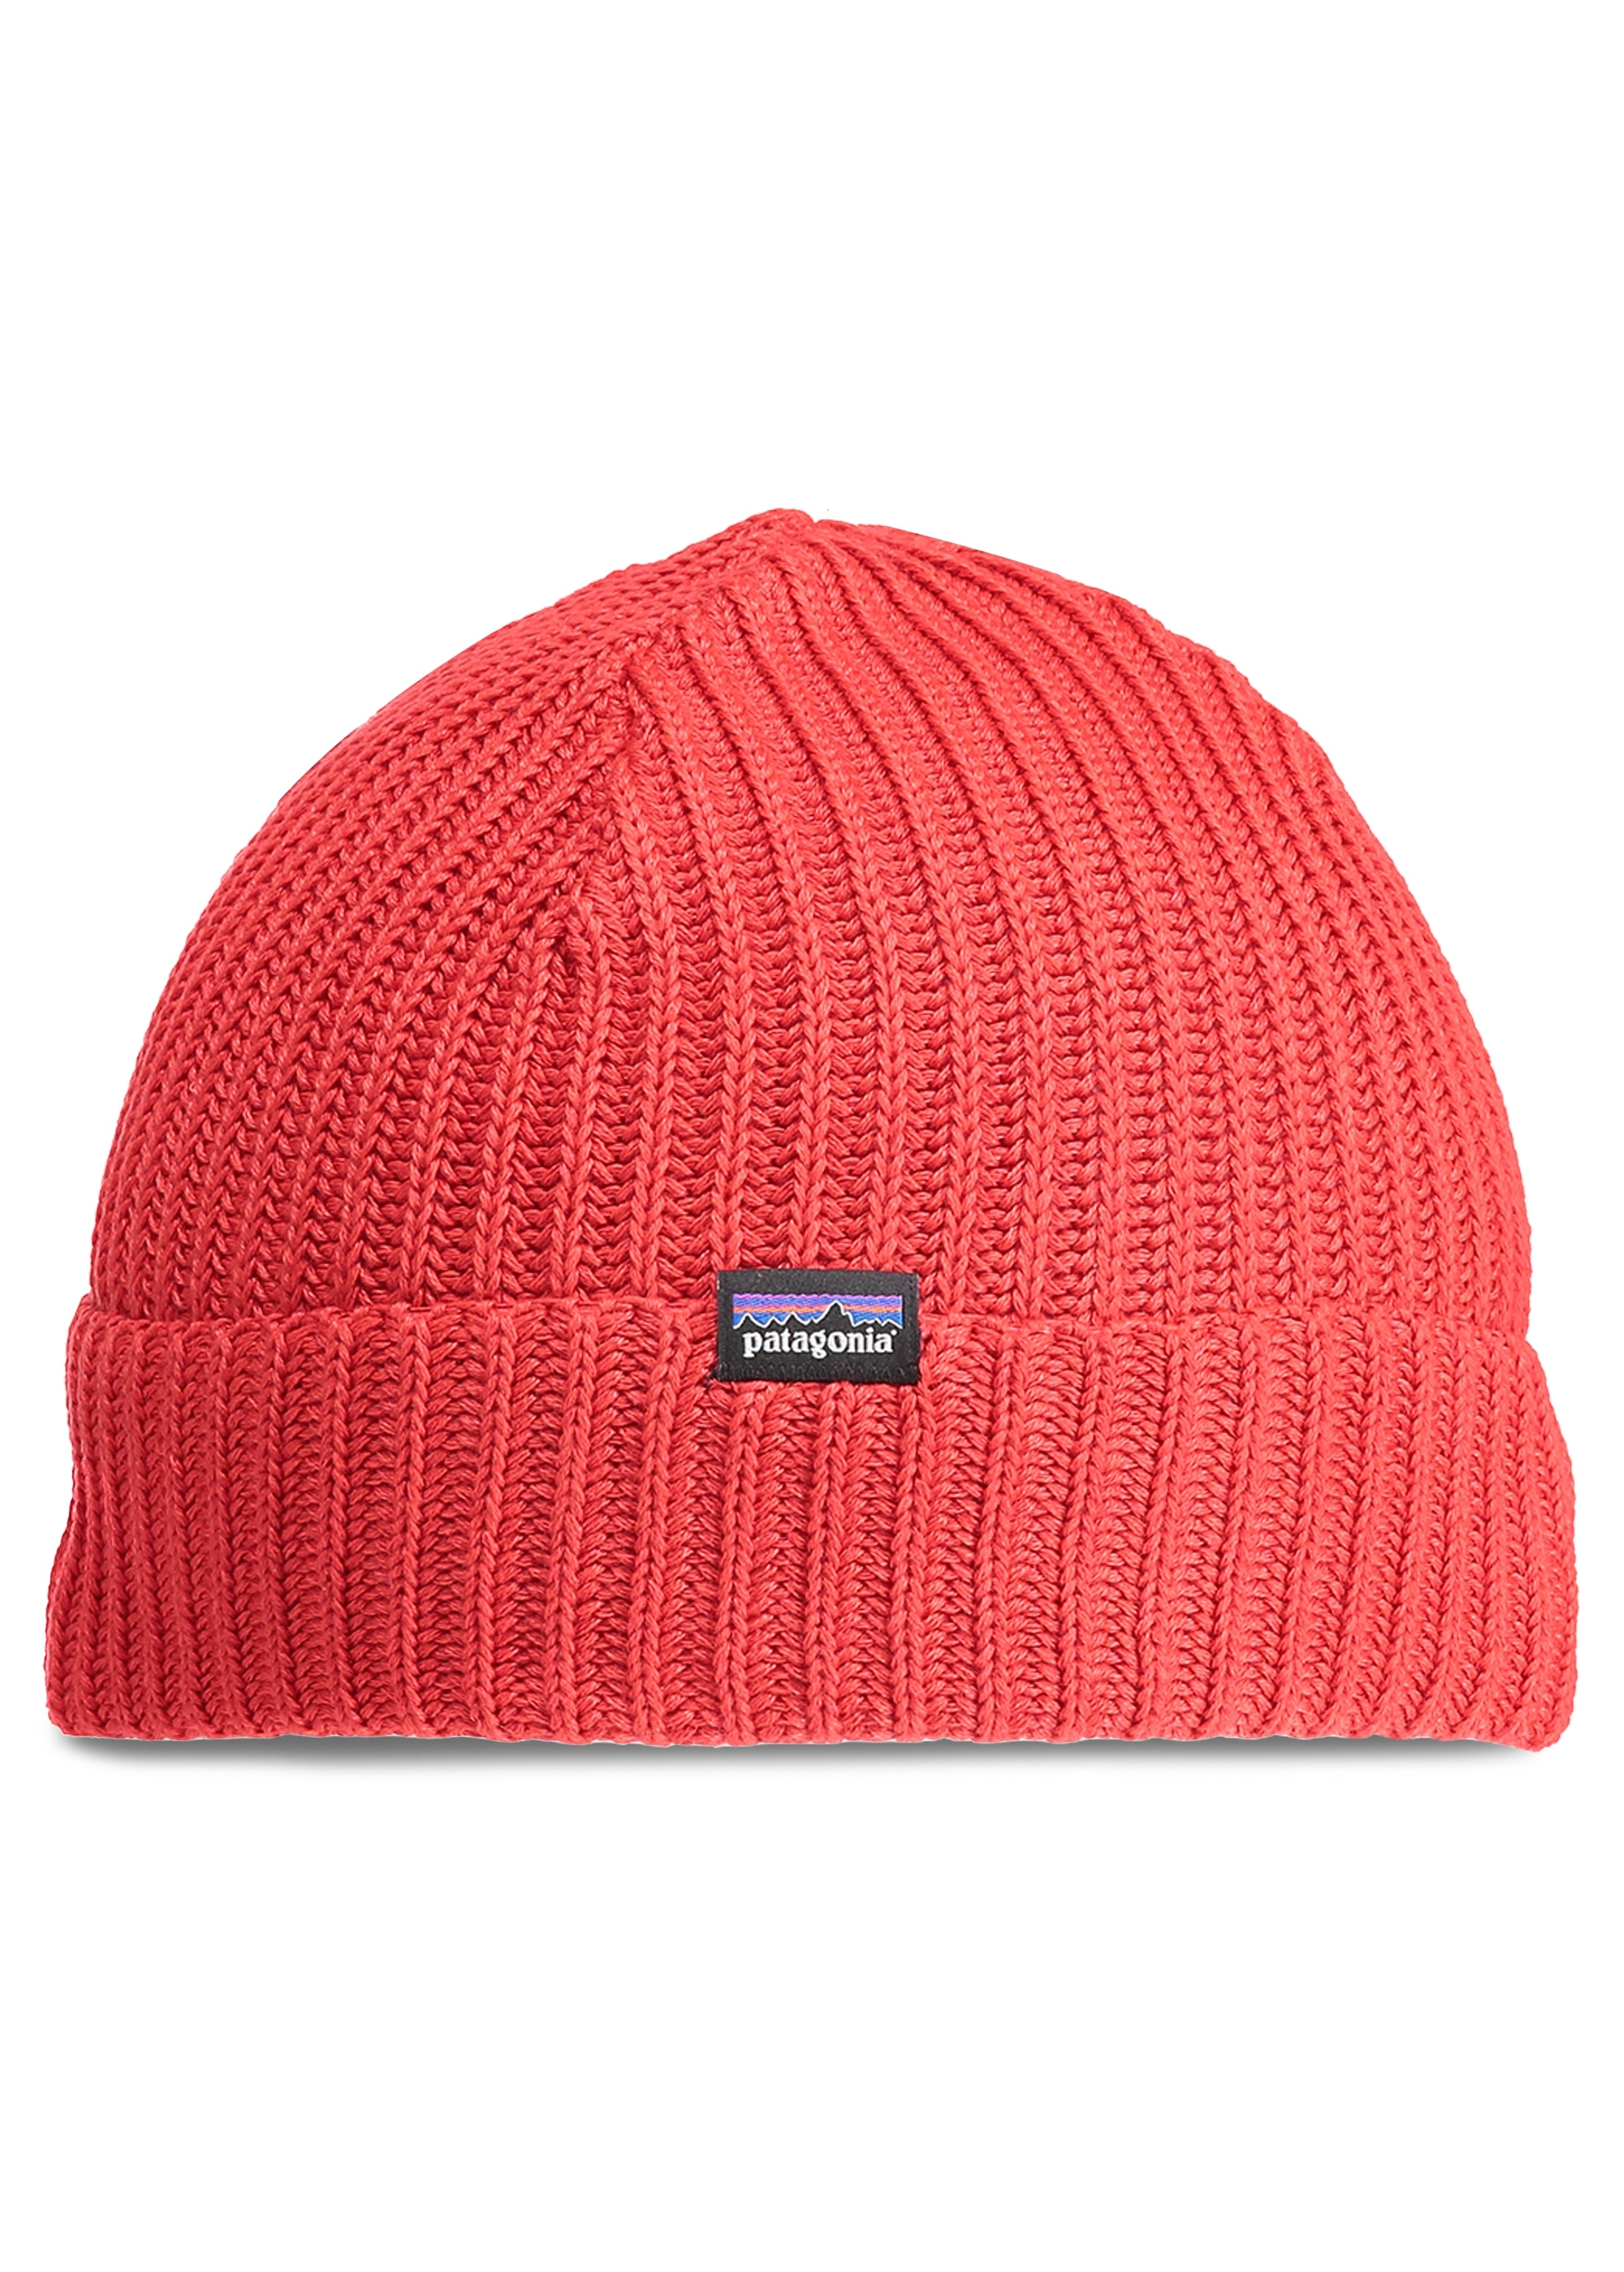 1ea3f4c737f Patagonia Fishermans Rolled Beanie - Fire - Headwear from Triads UK